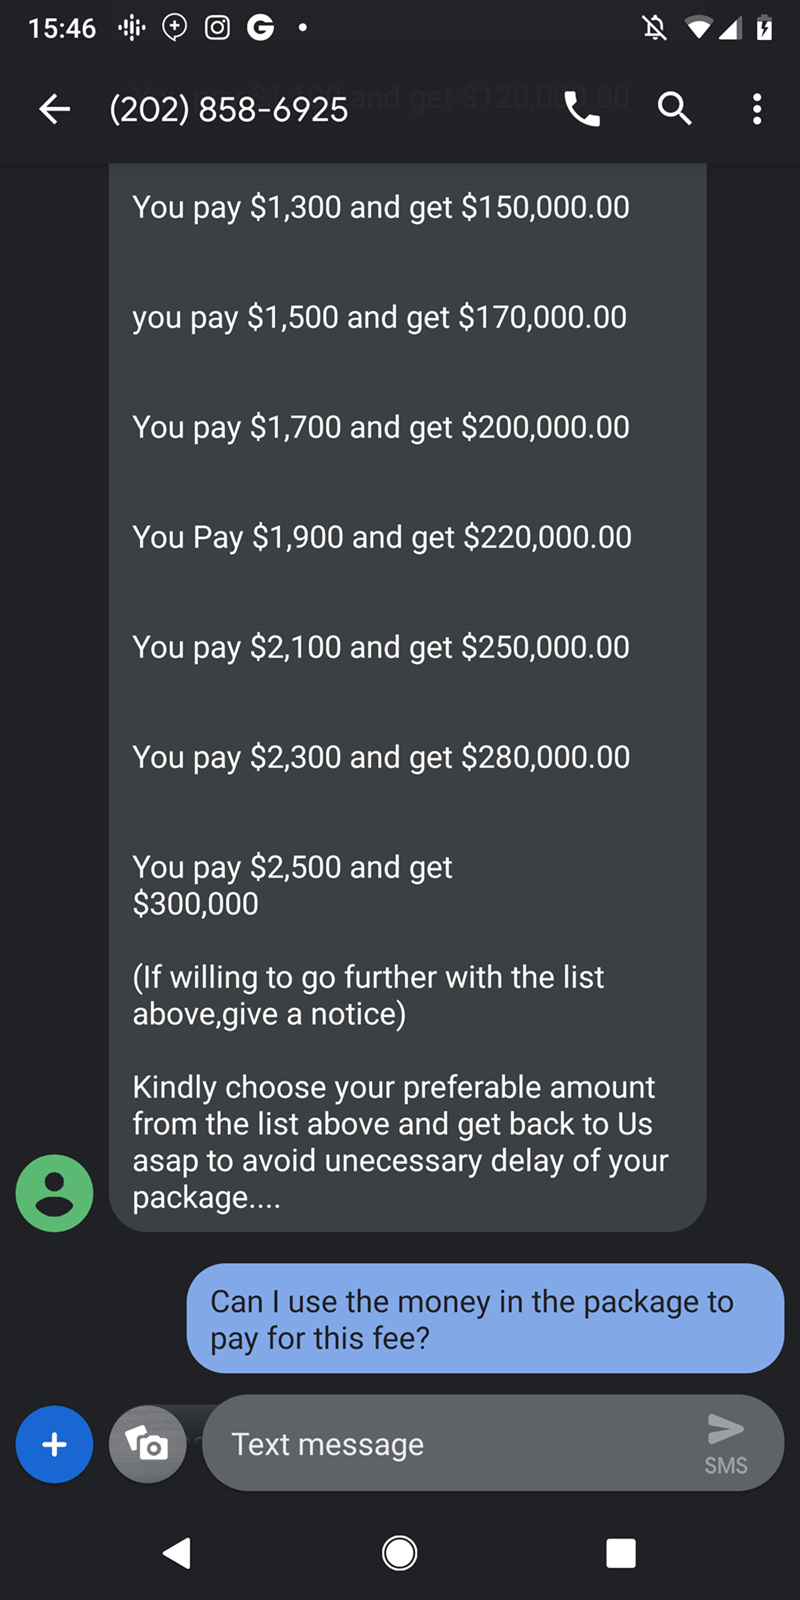 trolling - Text - 15:46 get S1 20,00 (202) 858-6925 You pay $1,300 and get $150,000.00 you pay $1,500 and get $170,000.00 You pay $1,700 and get $200,000.00 You Pay $1,900 and get $220,000.00 You pay $2,100 and get $250,000.00 You pay $2,300 and get $280,000.00 You pay $2,500 and get $300,000 (If willing to go further with the list above,give a notice) Kindly choose your preferable amount from the list above and get back to Us asap to avoid unecessary delay of your package... Can I use the money